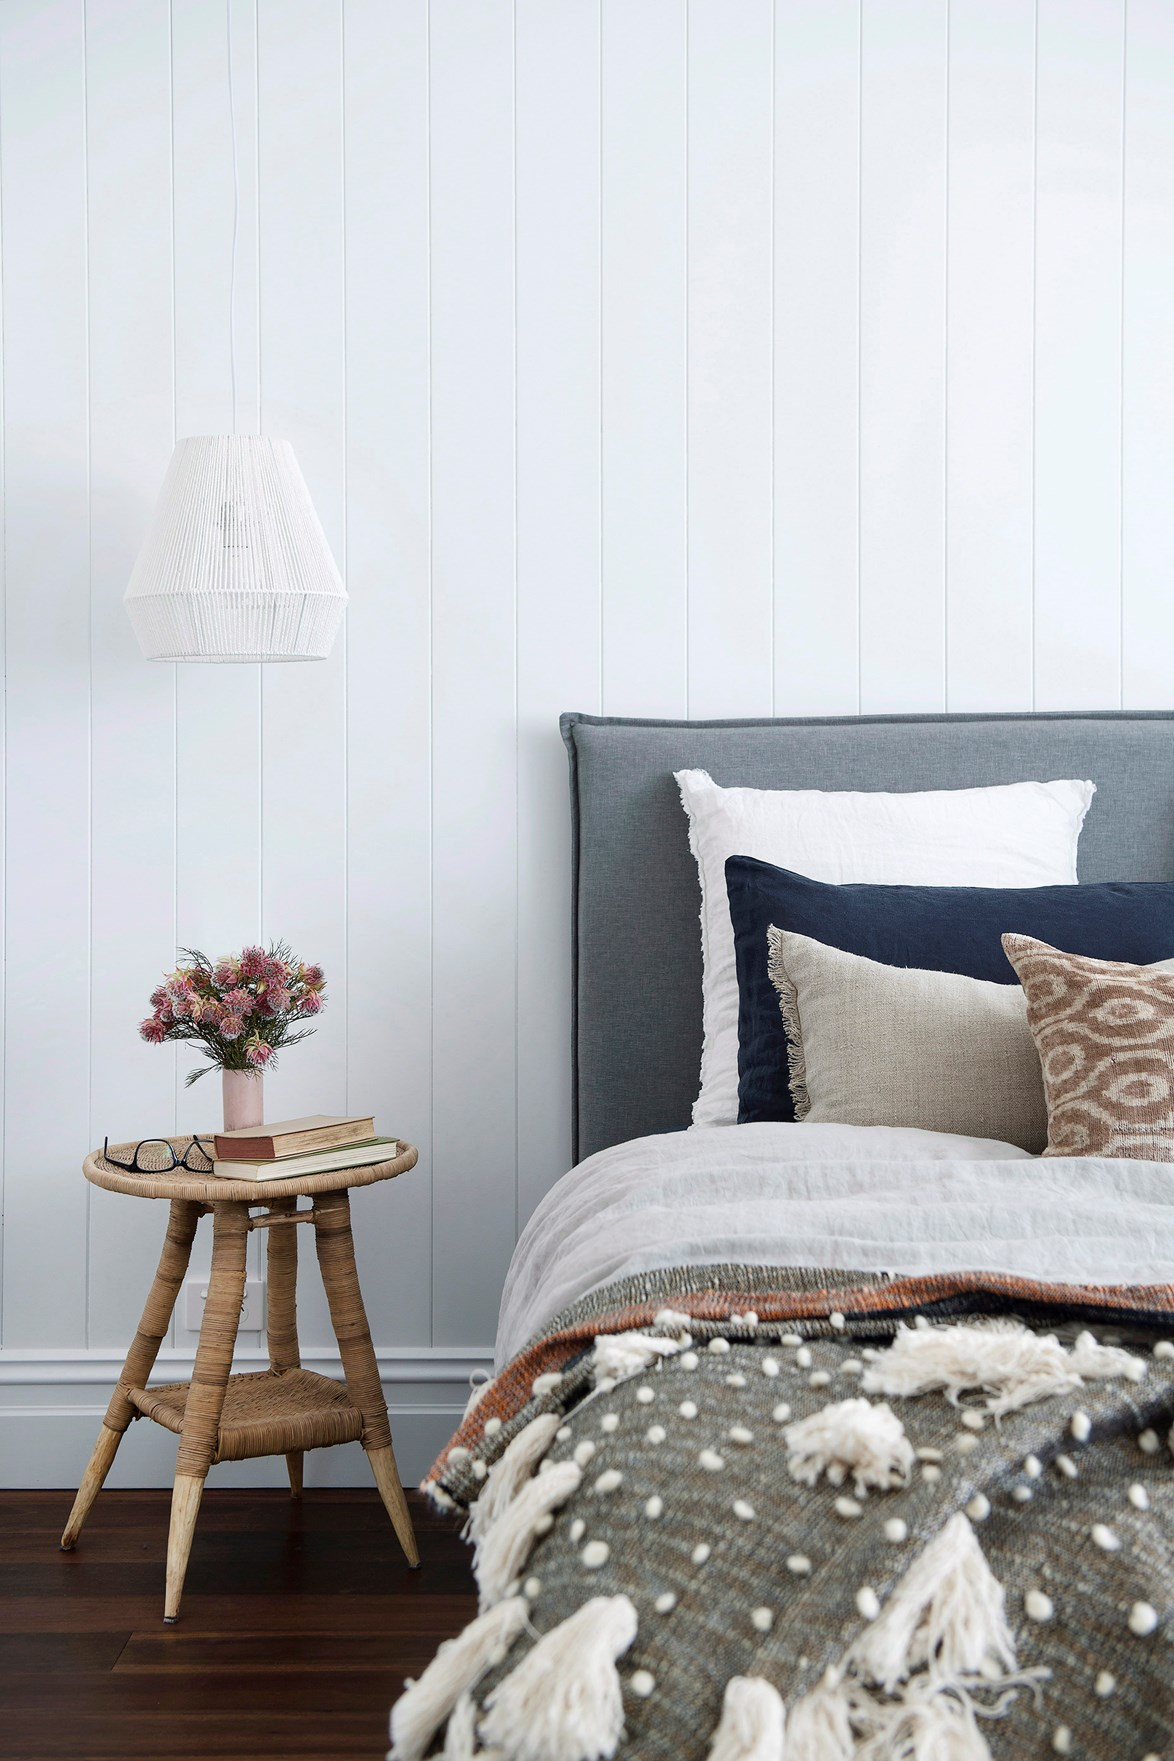 A soothing colour scheme combined with simple furnishings makes this bedroom a restful place to be.